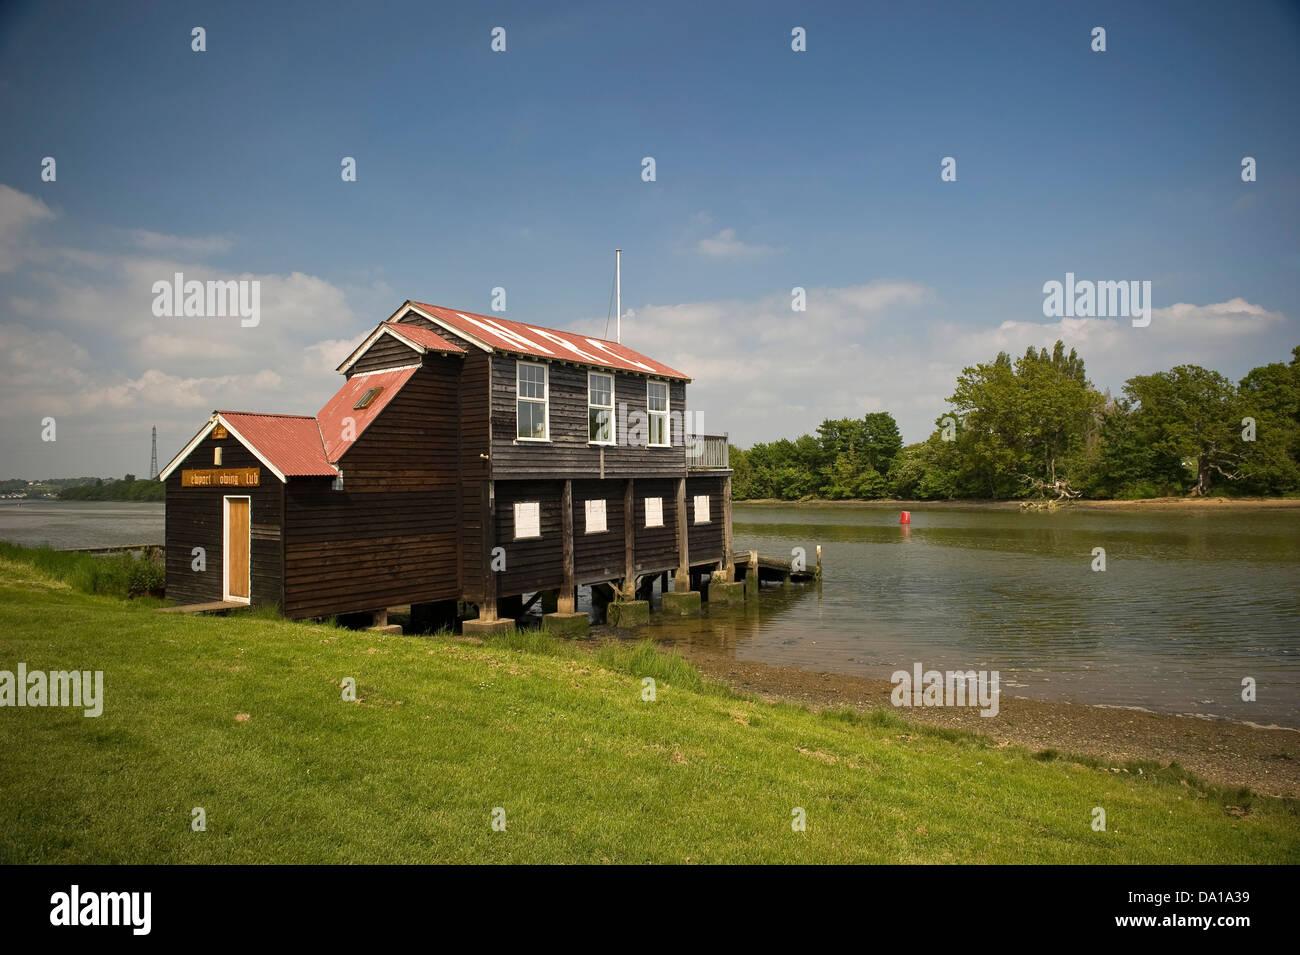 Newport Rowing Club clubhouse on the River Medina on the Isle of Wight, UK - Stock Image